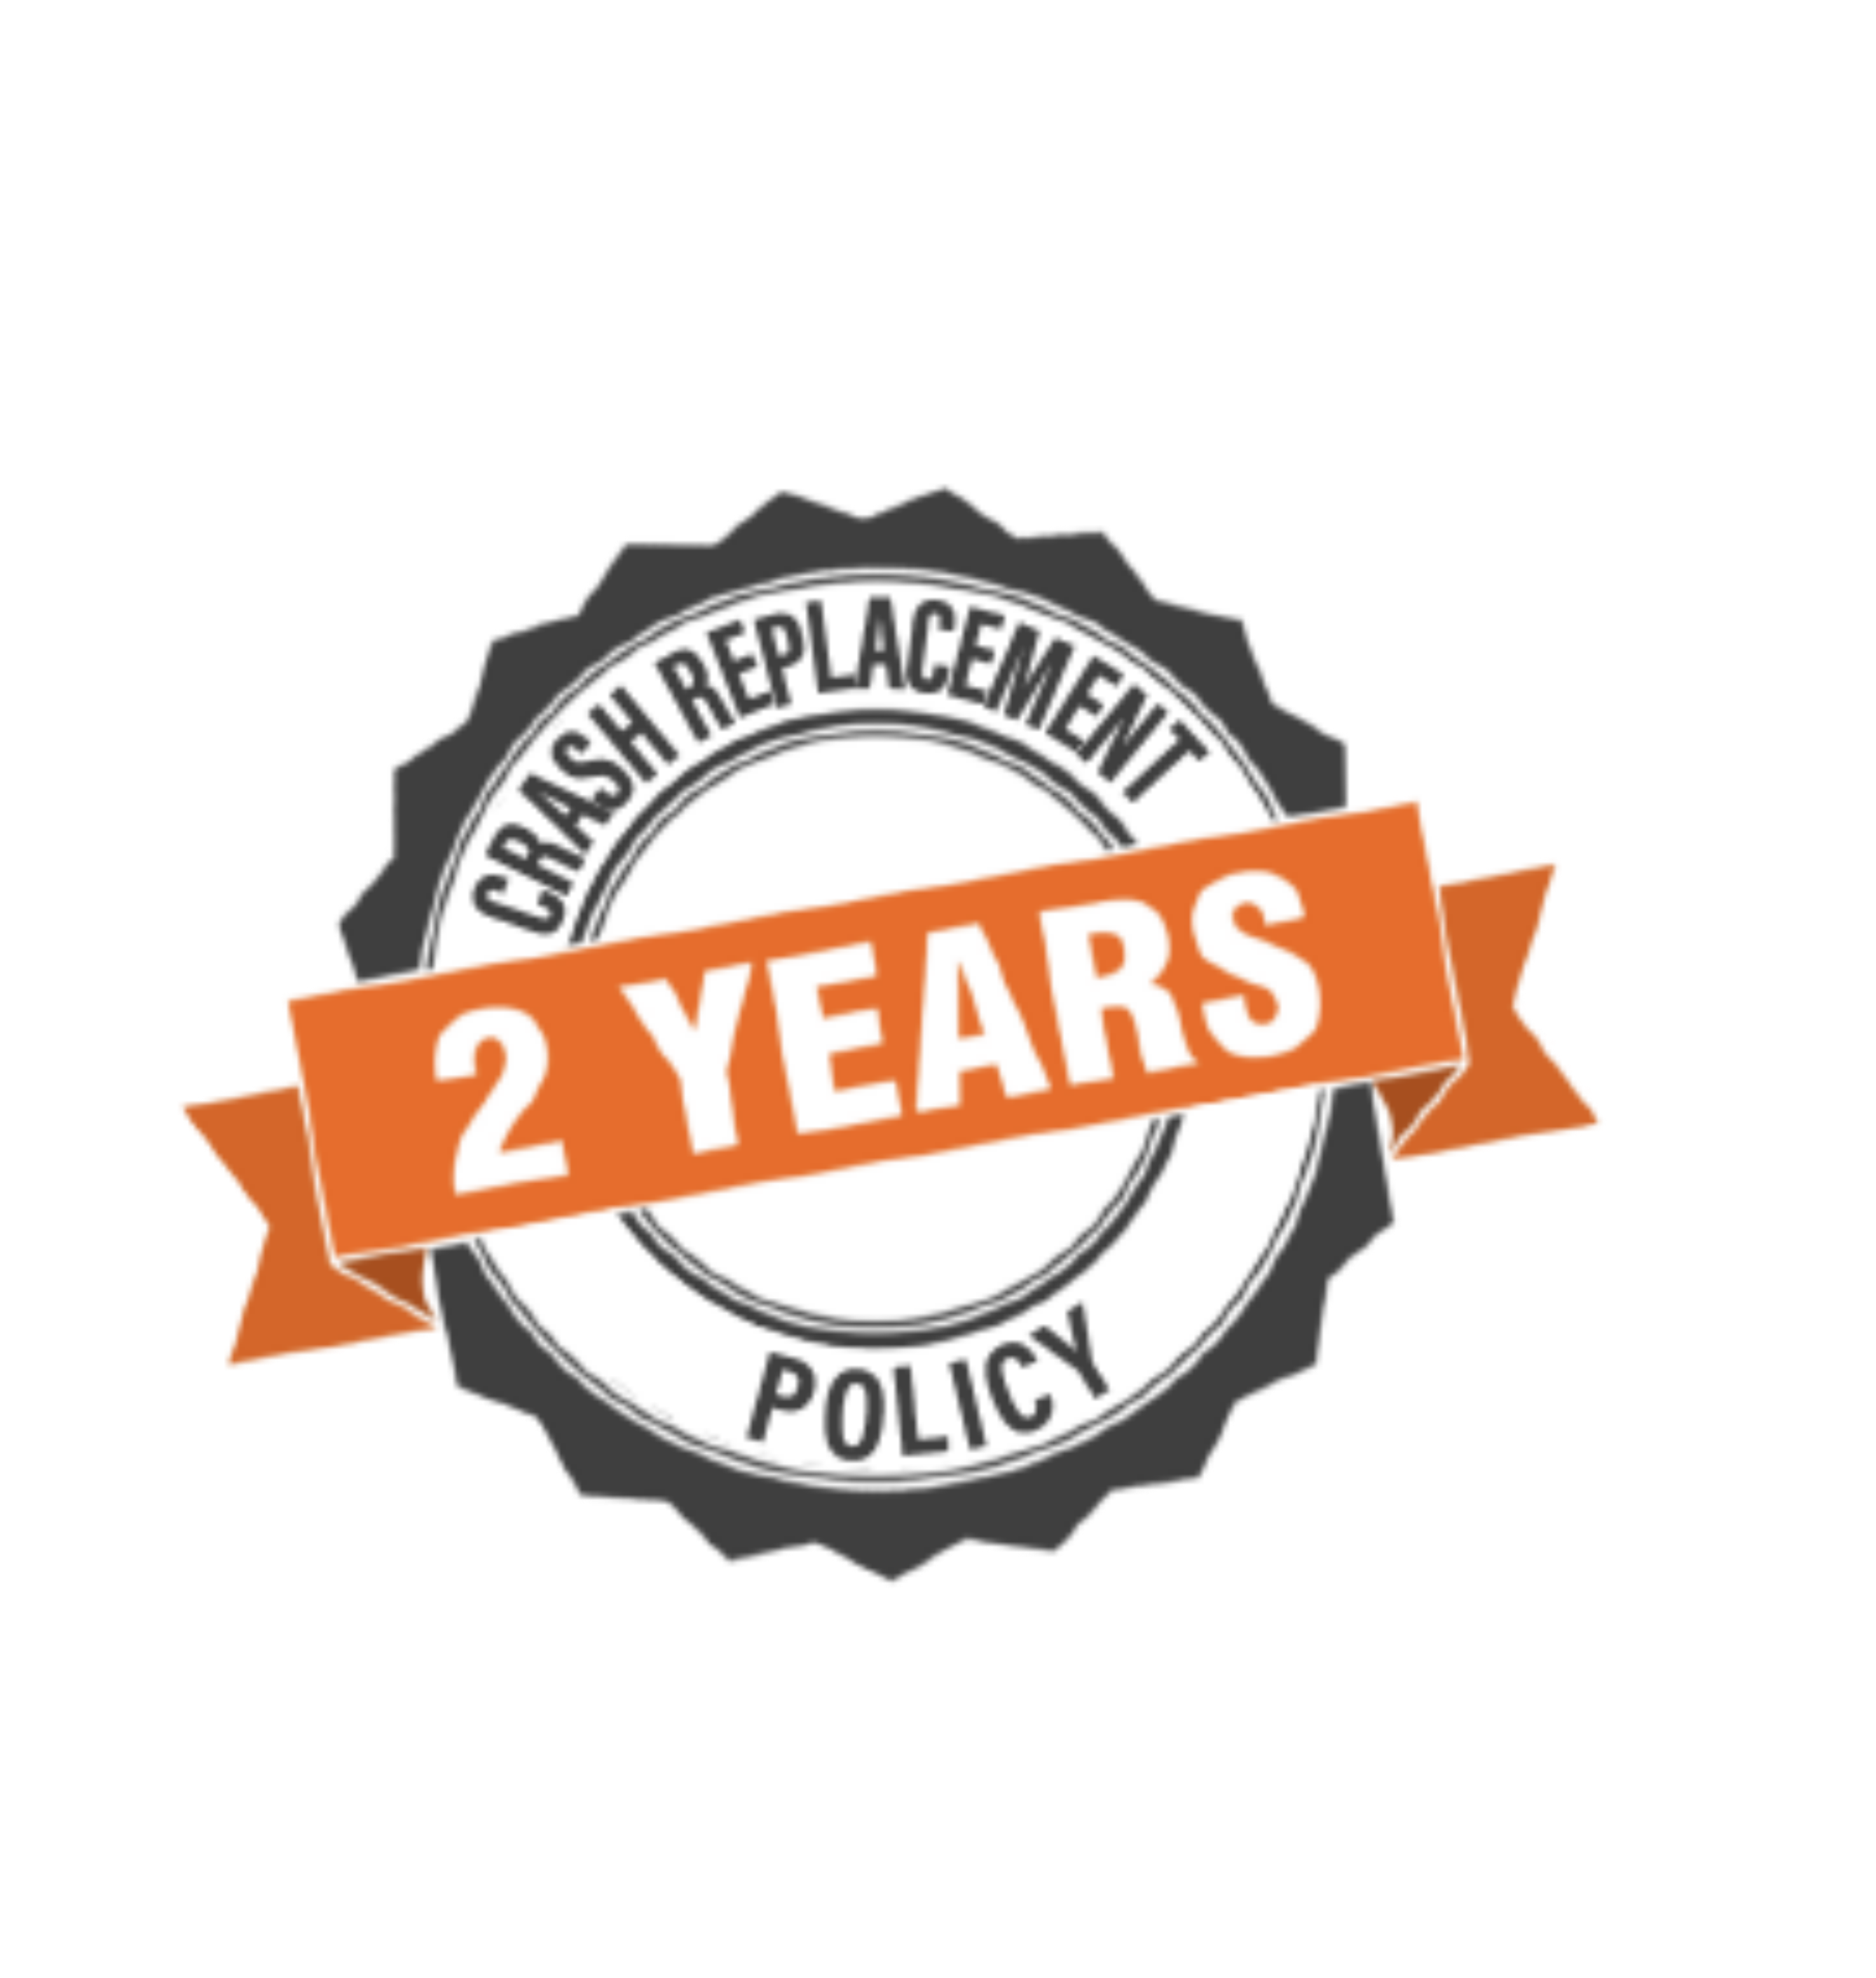 2 years crash replacement policy